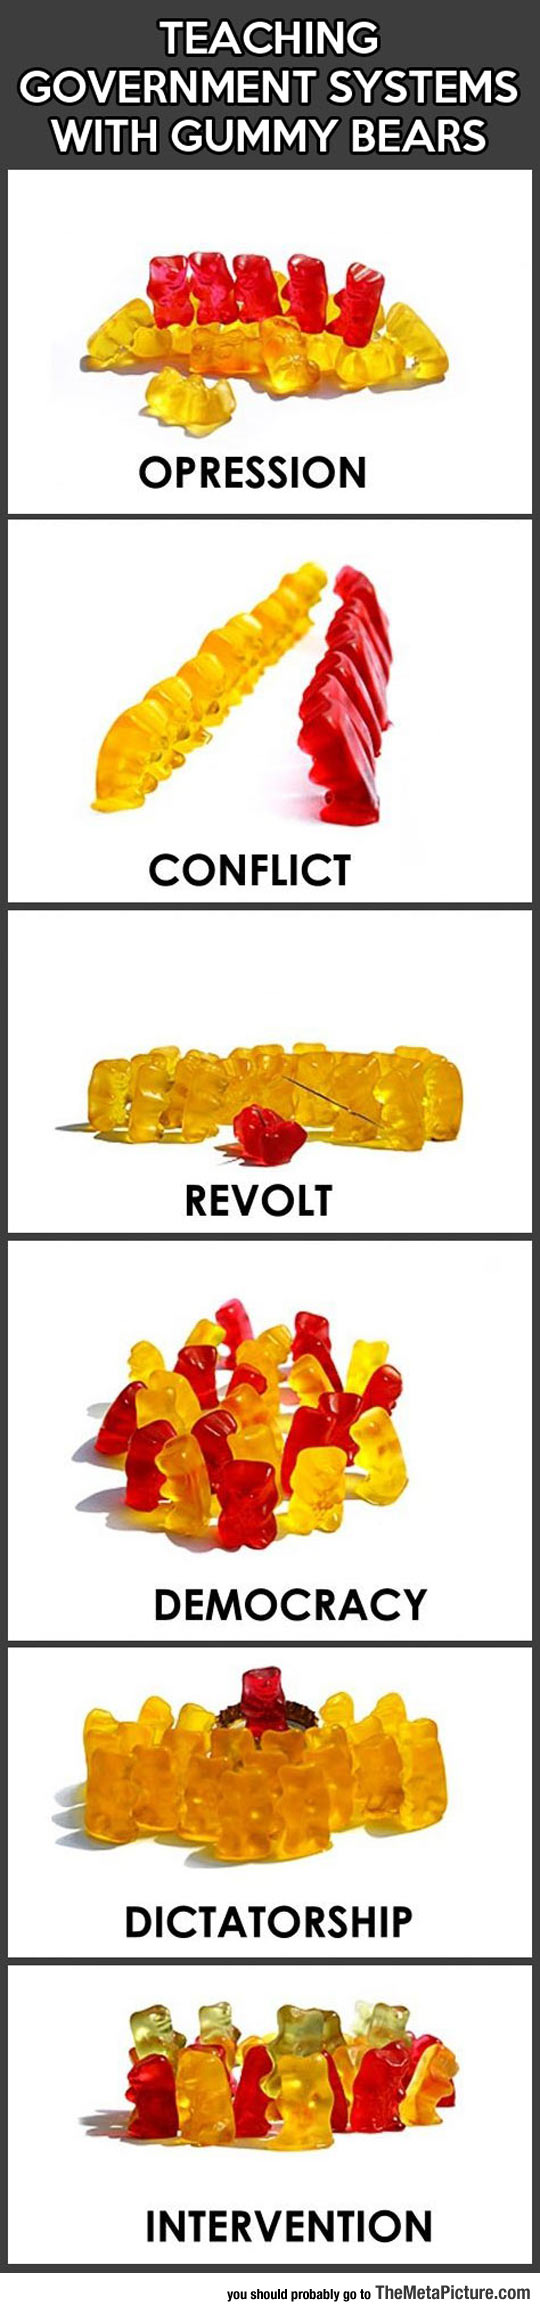 Understanding Government Systems With Gummy Bears